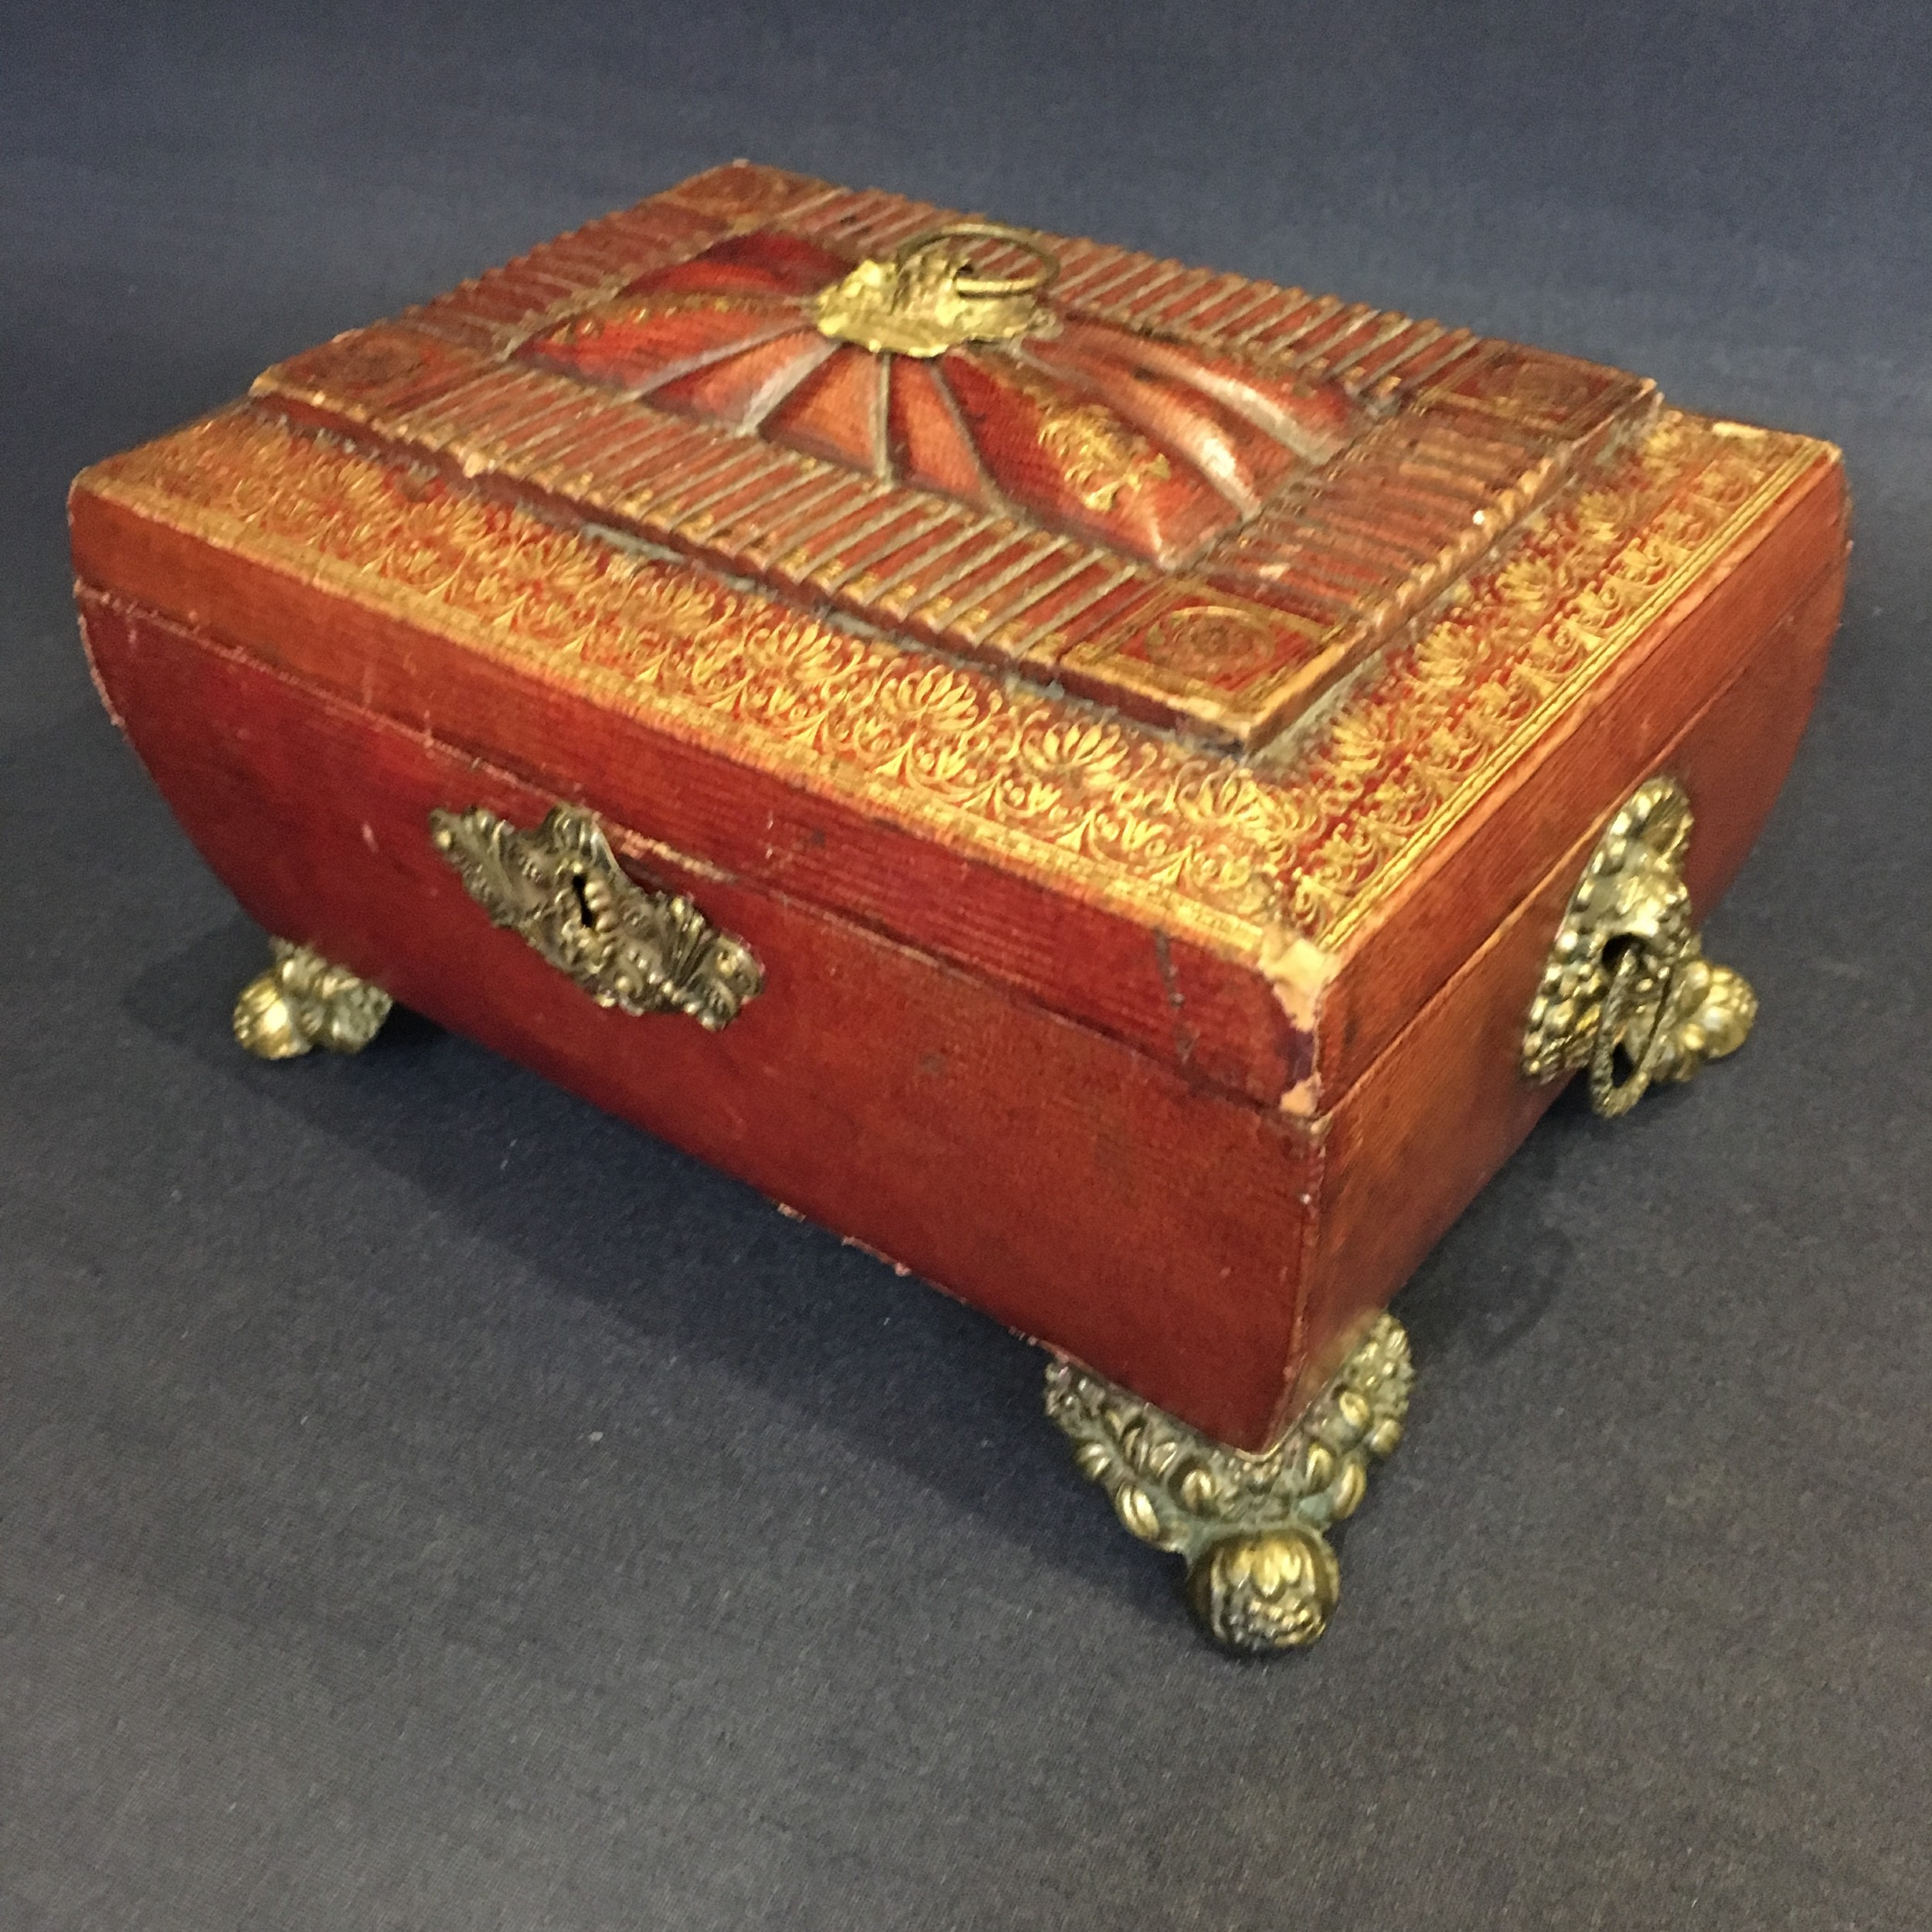 regency leather sewing box with tooled leather work resting on bun feet